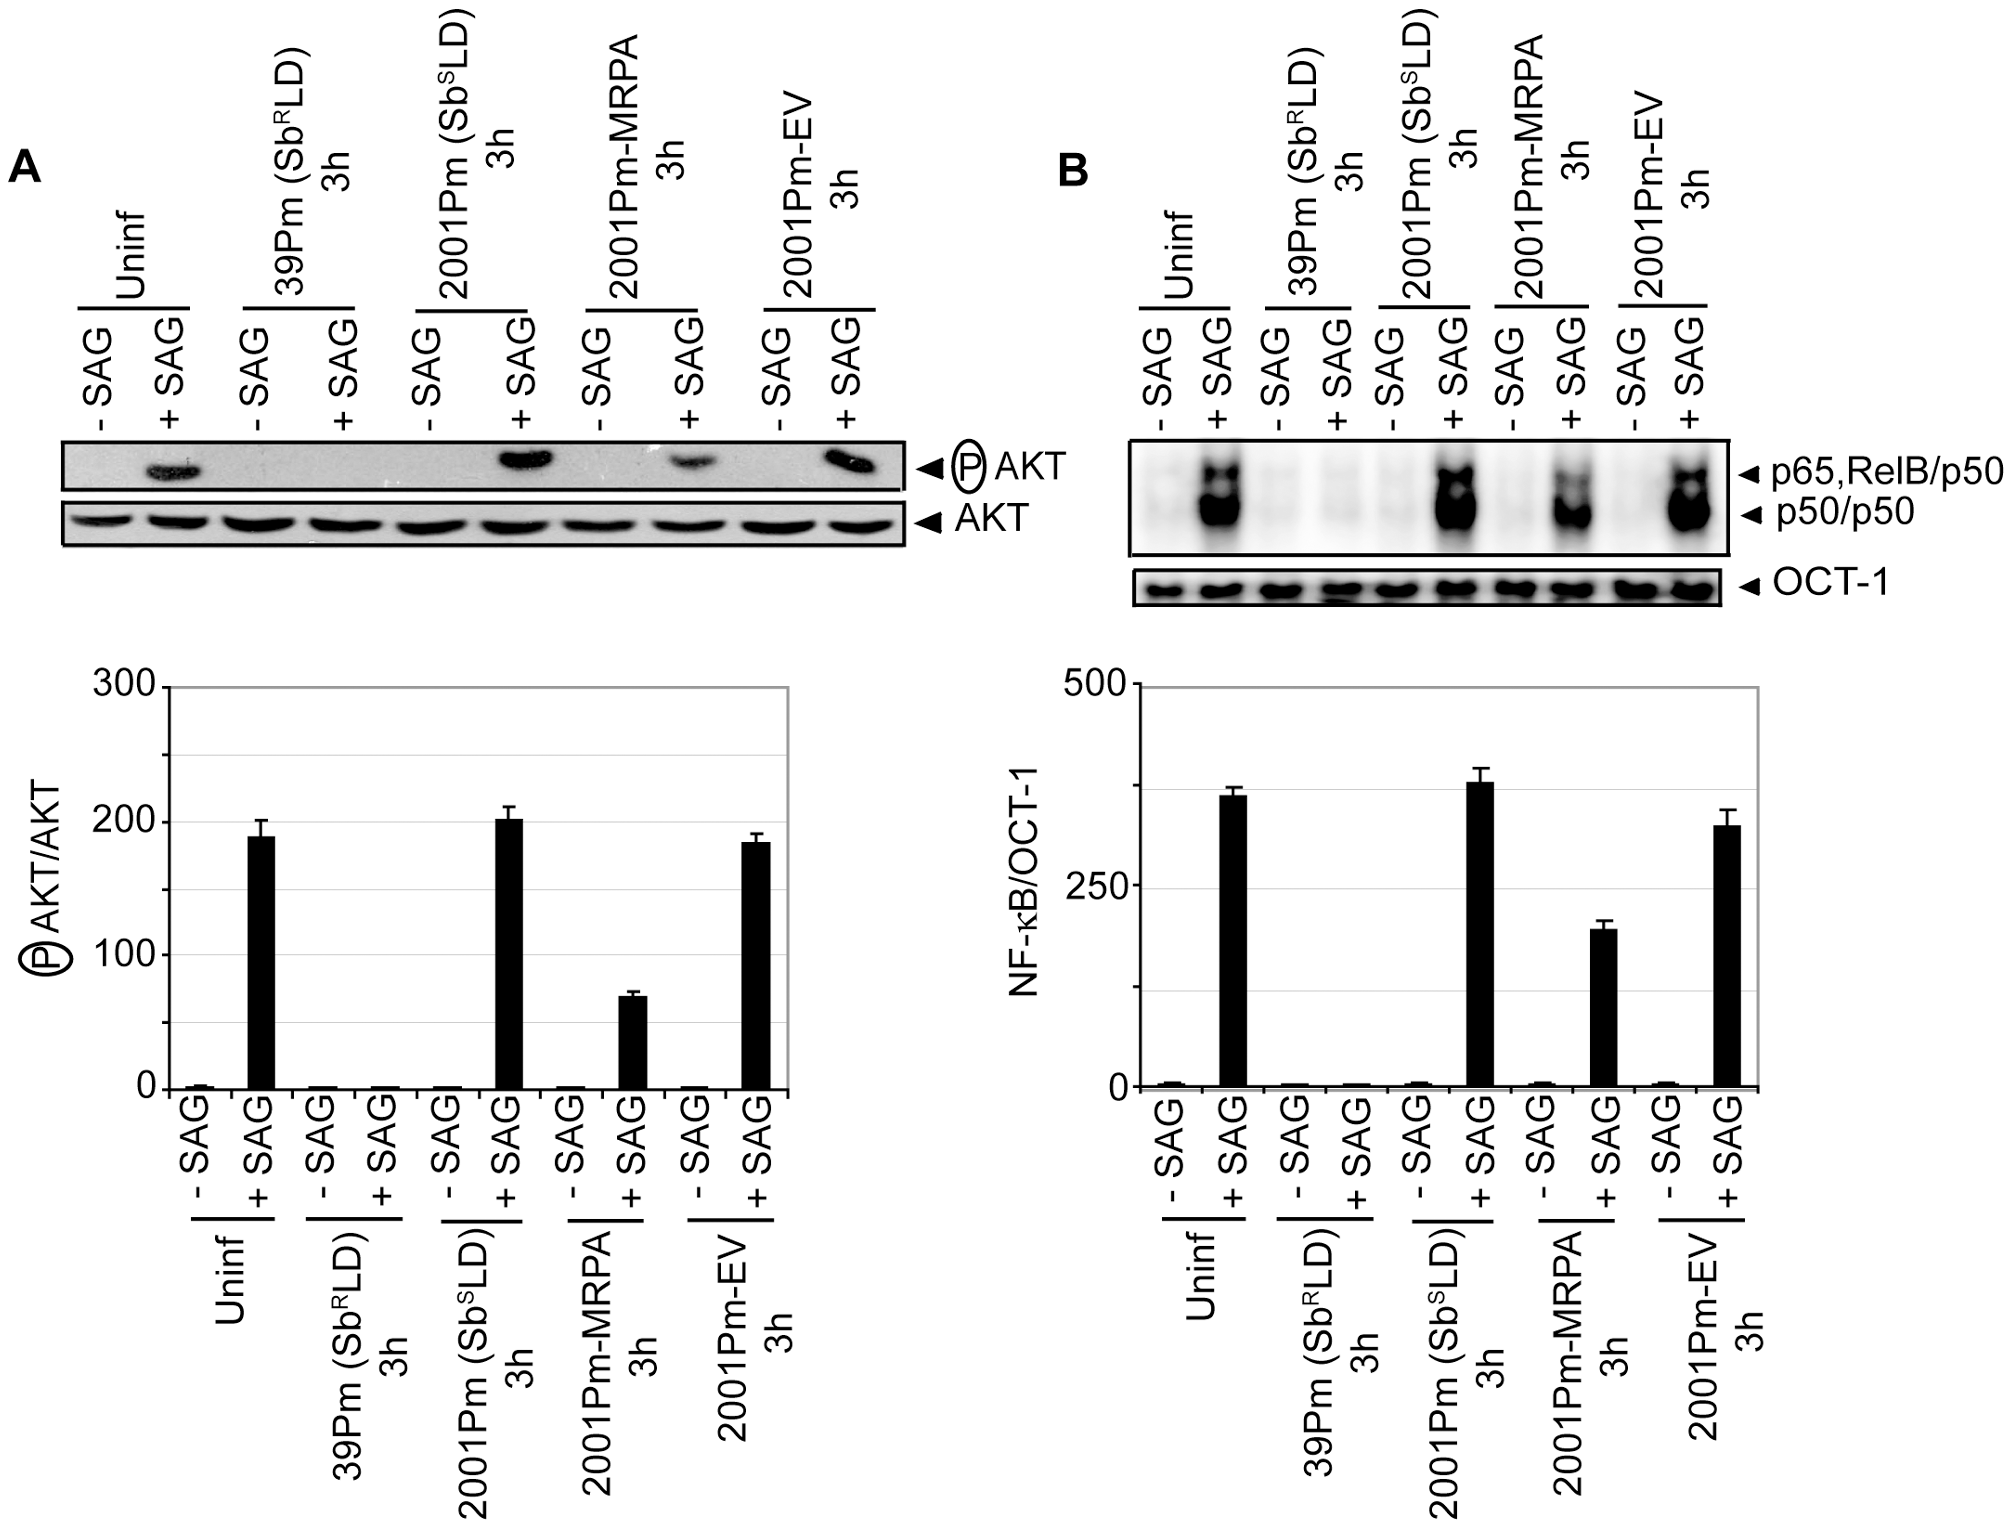 2001Pm-MRPA but not 2001Pm inhibits SAG-induced AKT phosphorylation and DNA binding activity of NF-κB.